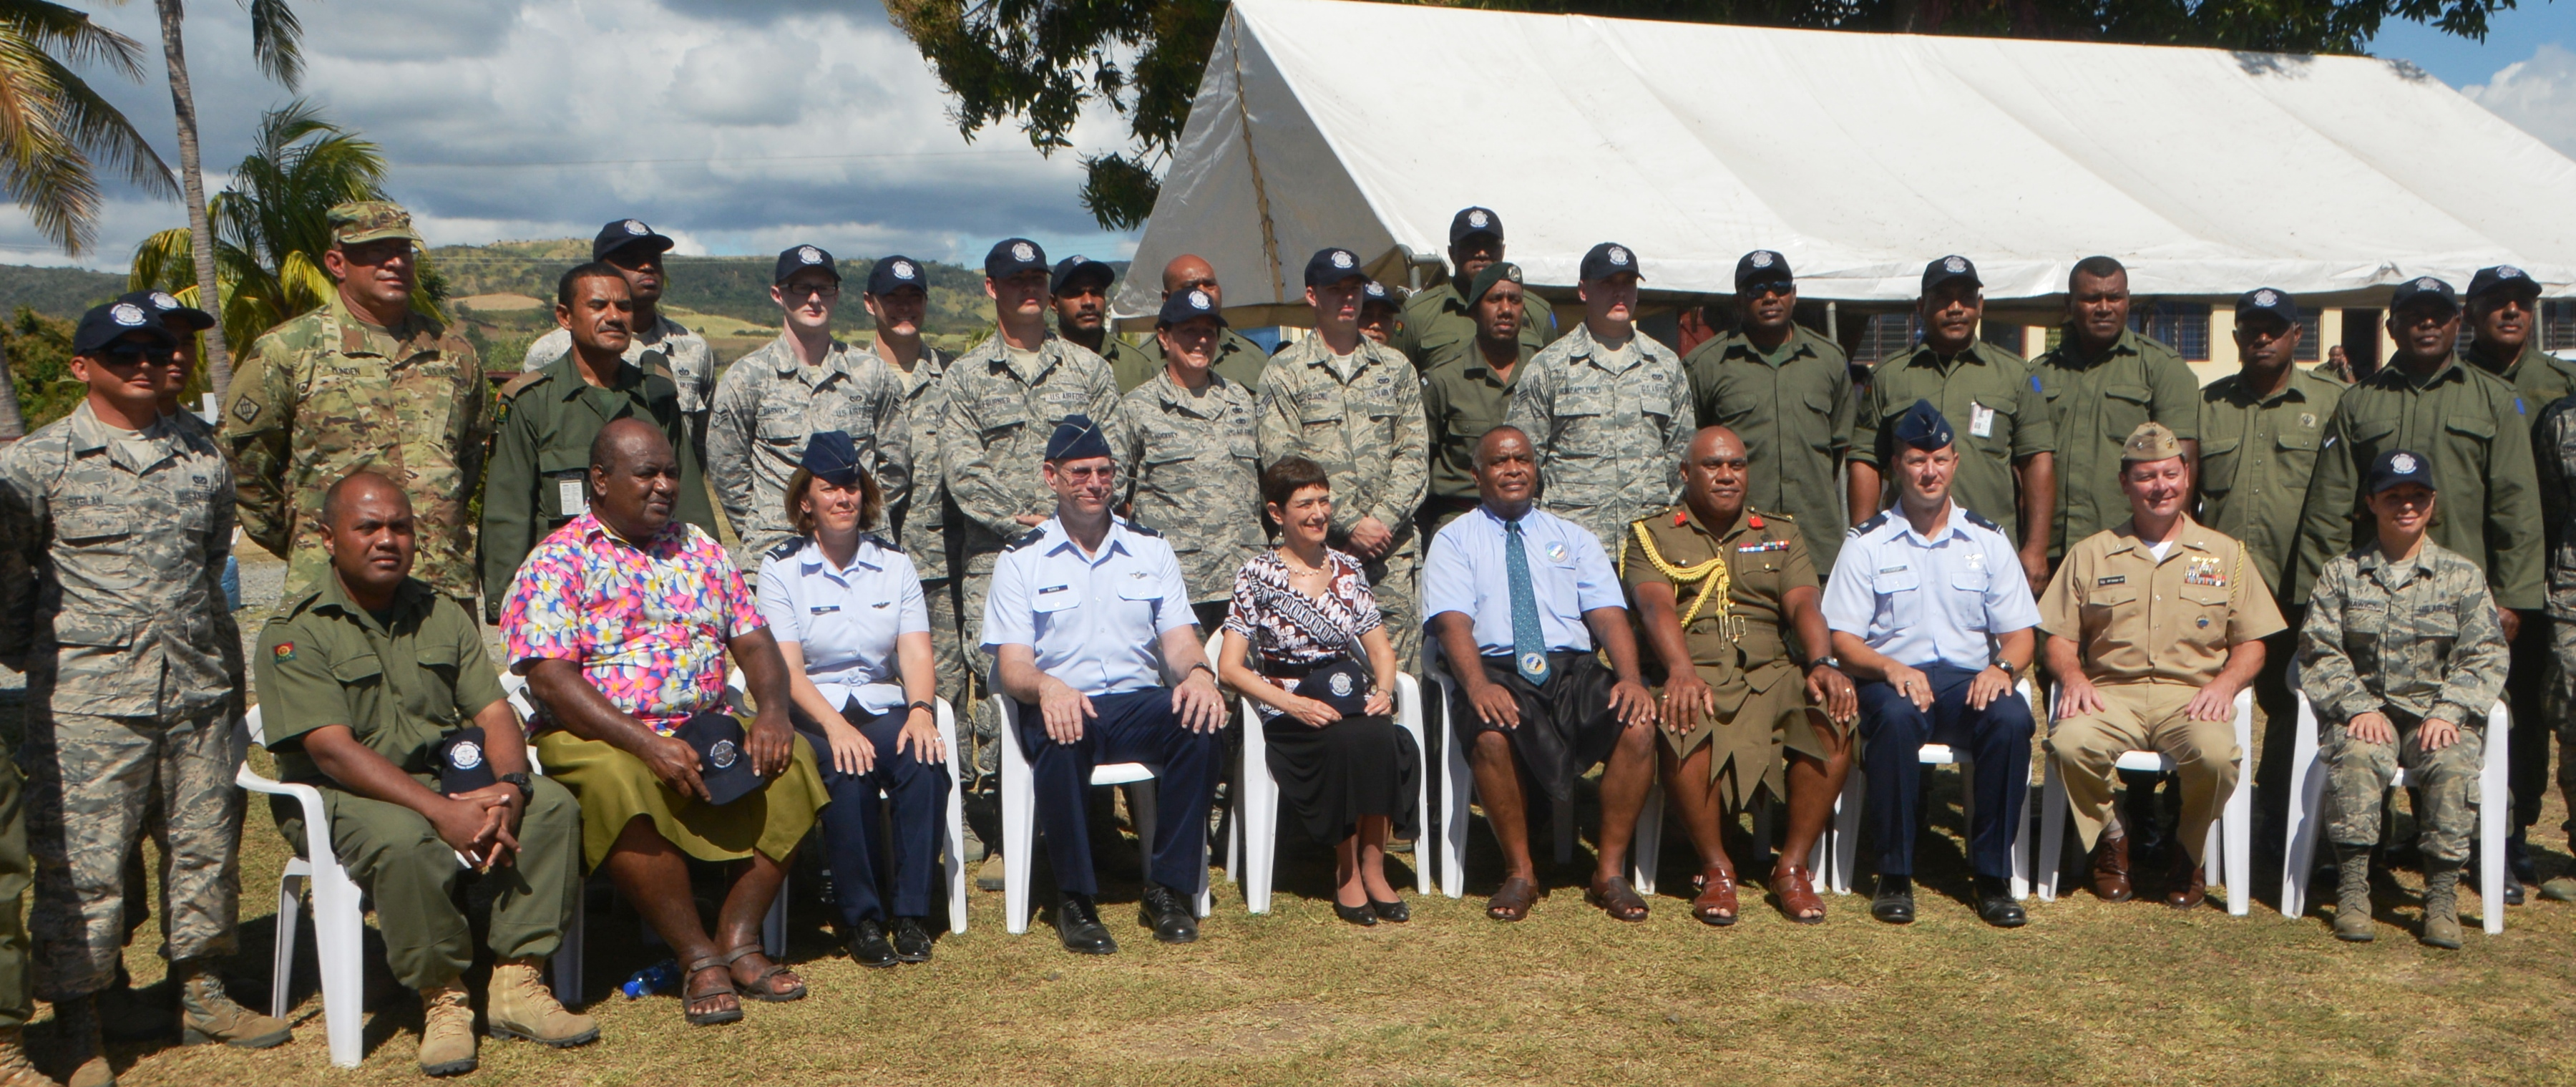 Fourth from left are: Brigadier-General William Burks, US Ambassador Judith Cefkin, Commissioner Western Manasa Tagicakibau, Colonel Onisivoro Covunisaqa with officials and military personnel of PACANGEL on July 24, 2017. Photo: Charles Chambers